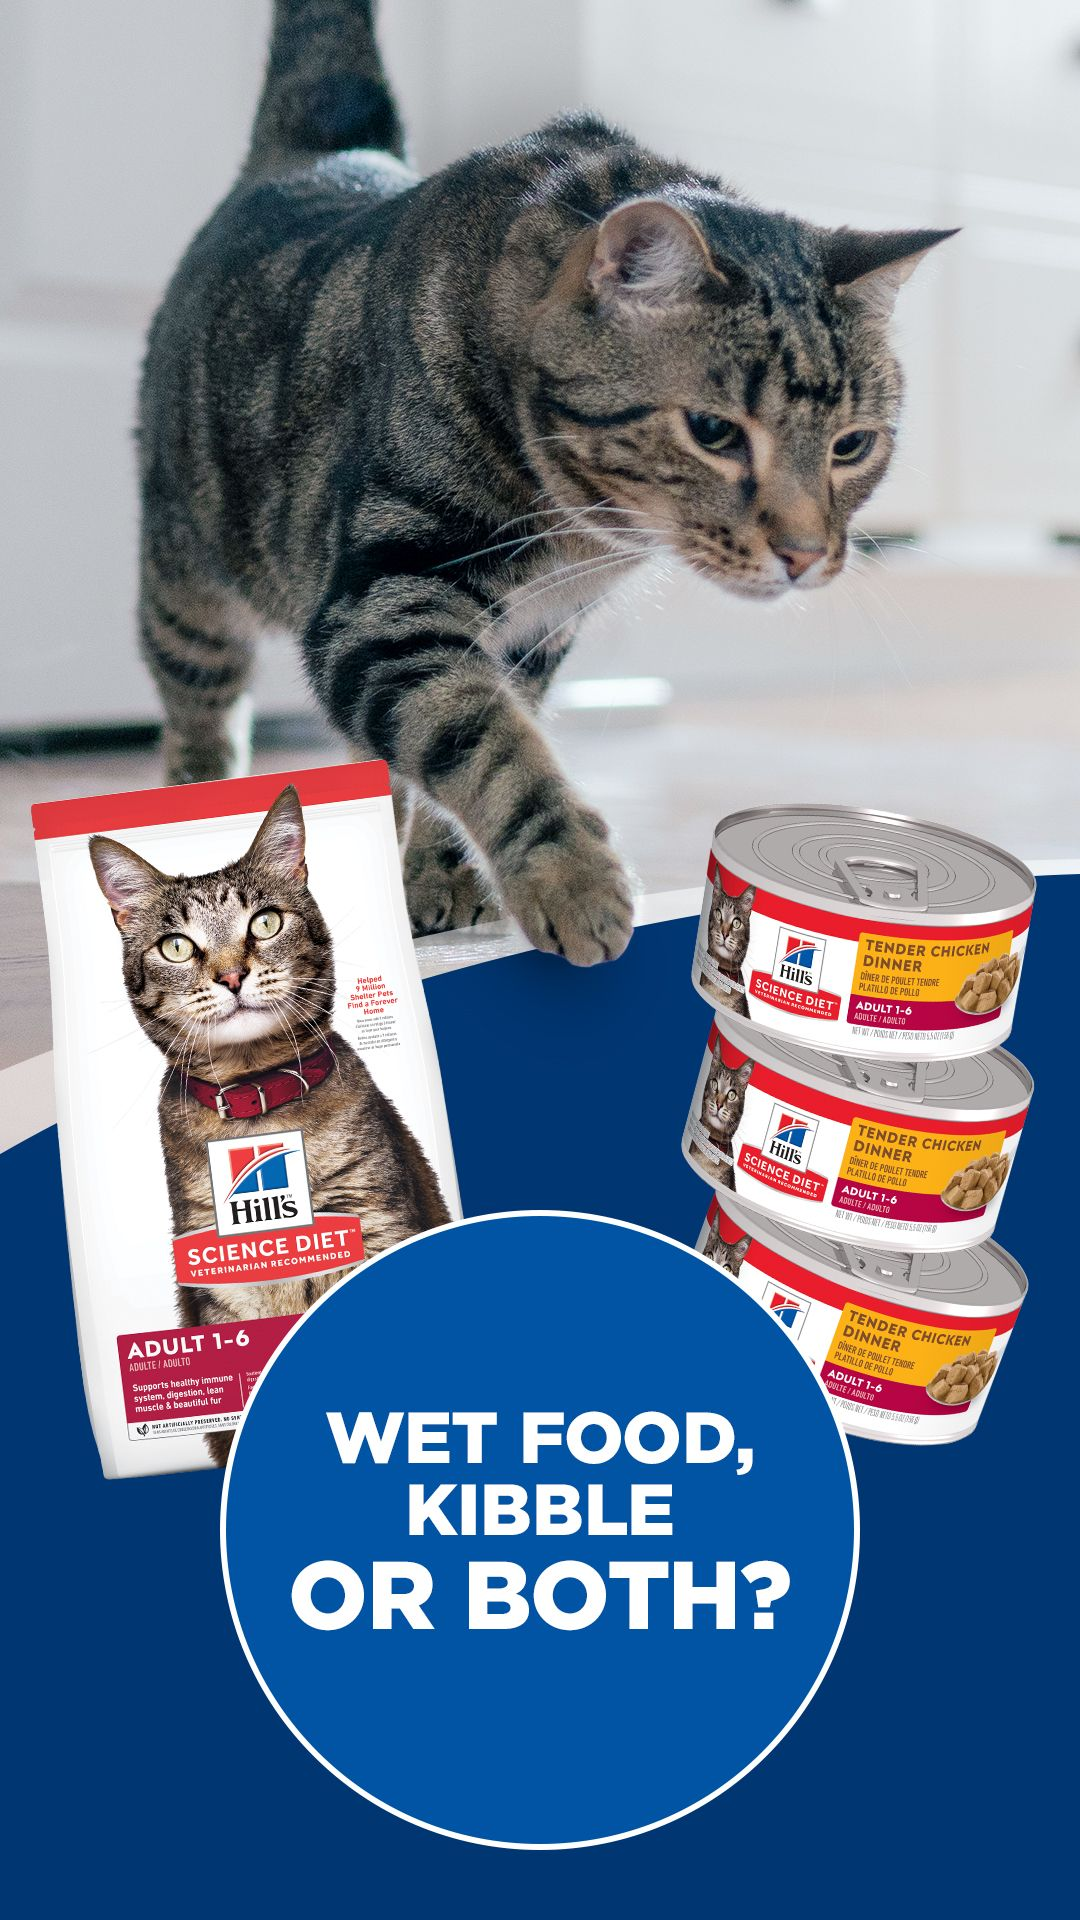 Mixing Wet And Dry Pet Food Properly Hill S Pet In 2020 Wet Cat Food Kitten Care Pet Care